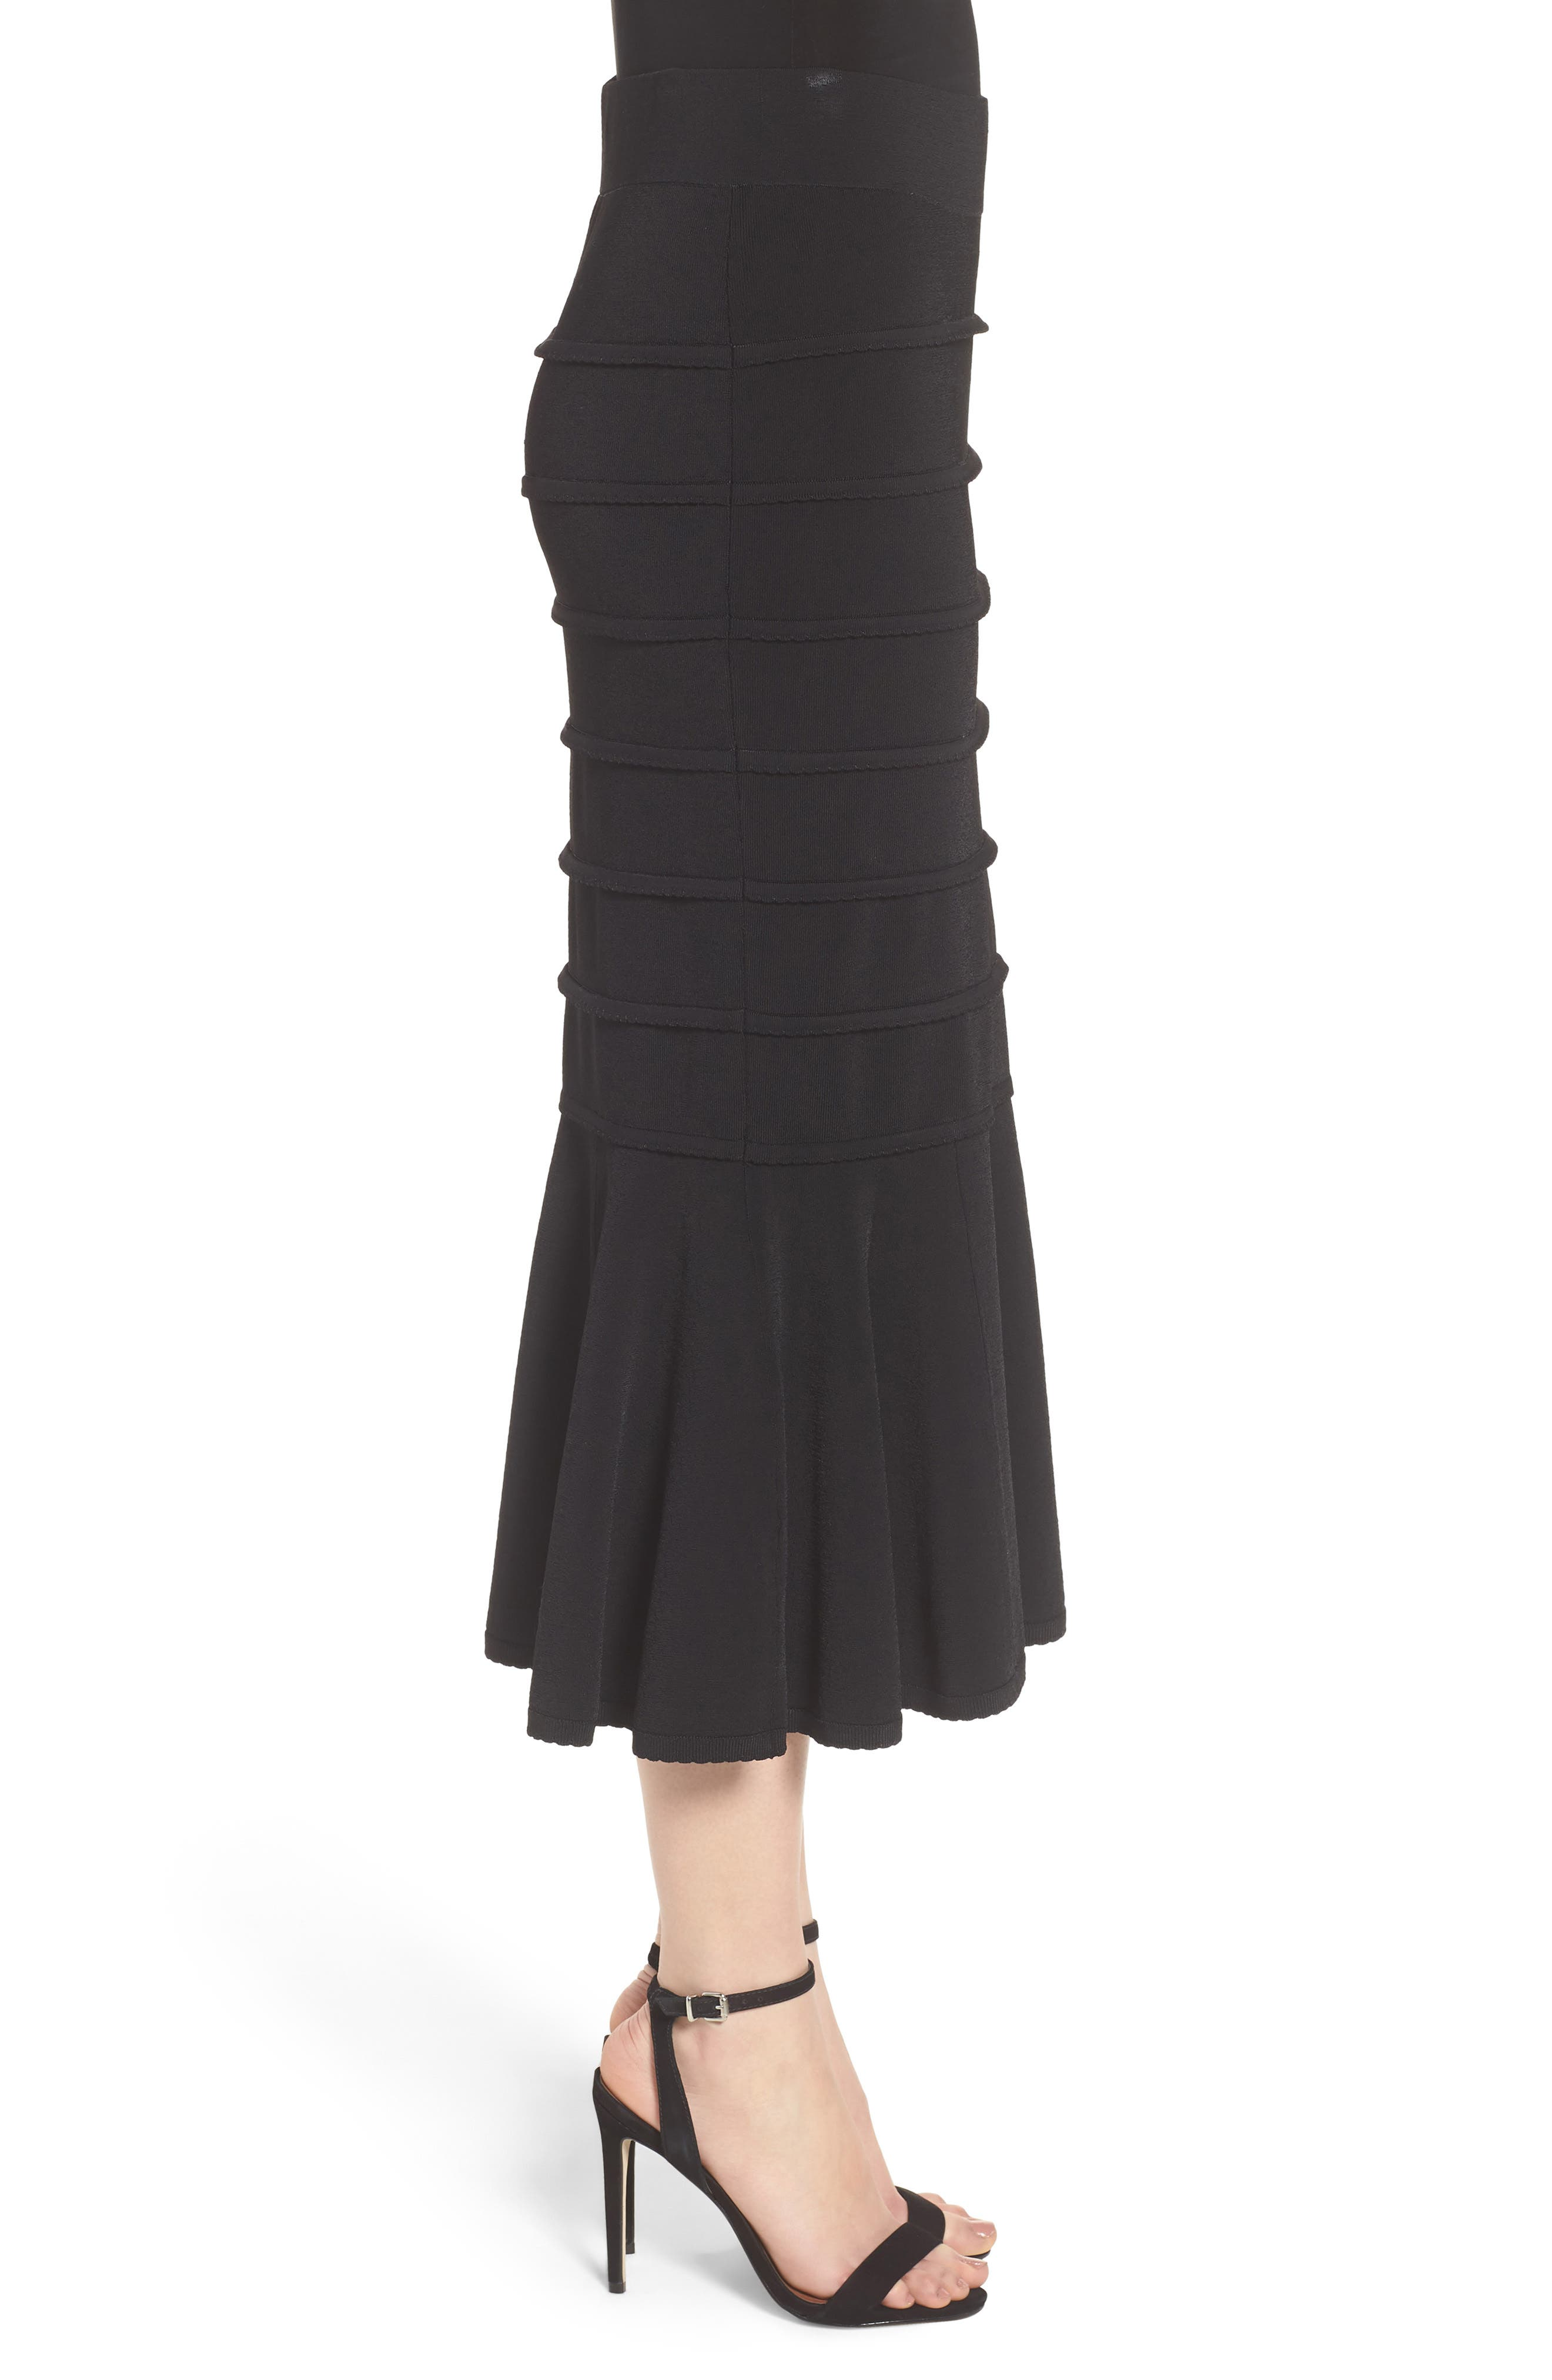 CHELSEA28,                             Trumpet Skirt,                             Alternate thumbnail 3, color,                             001